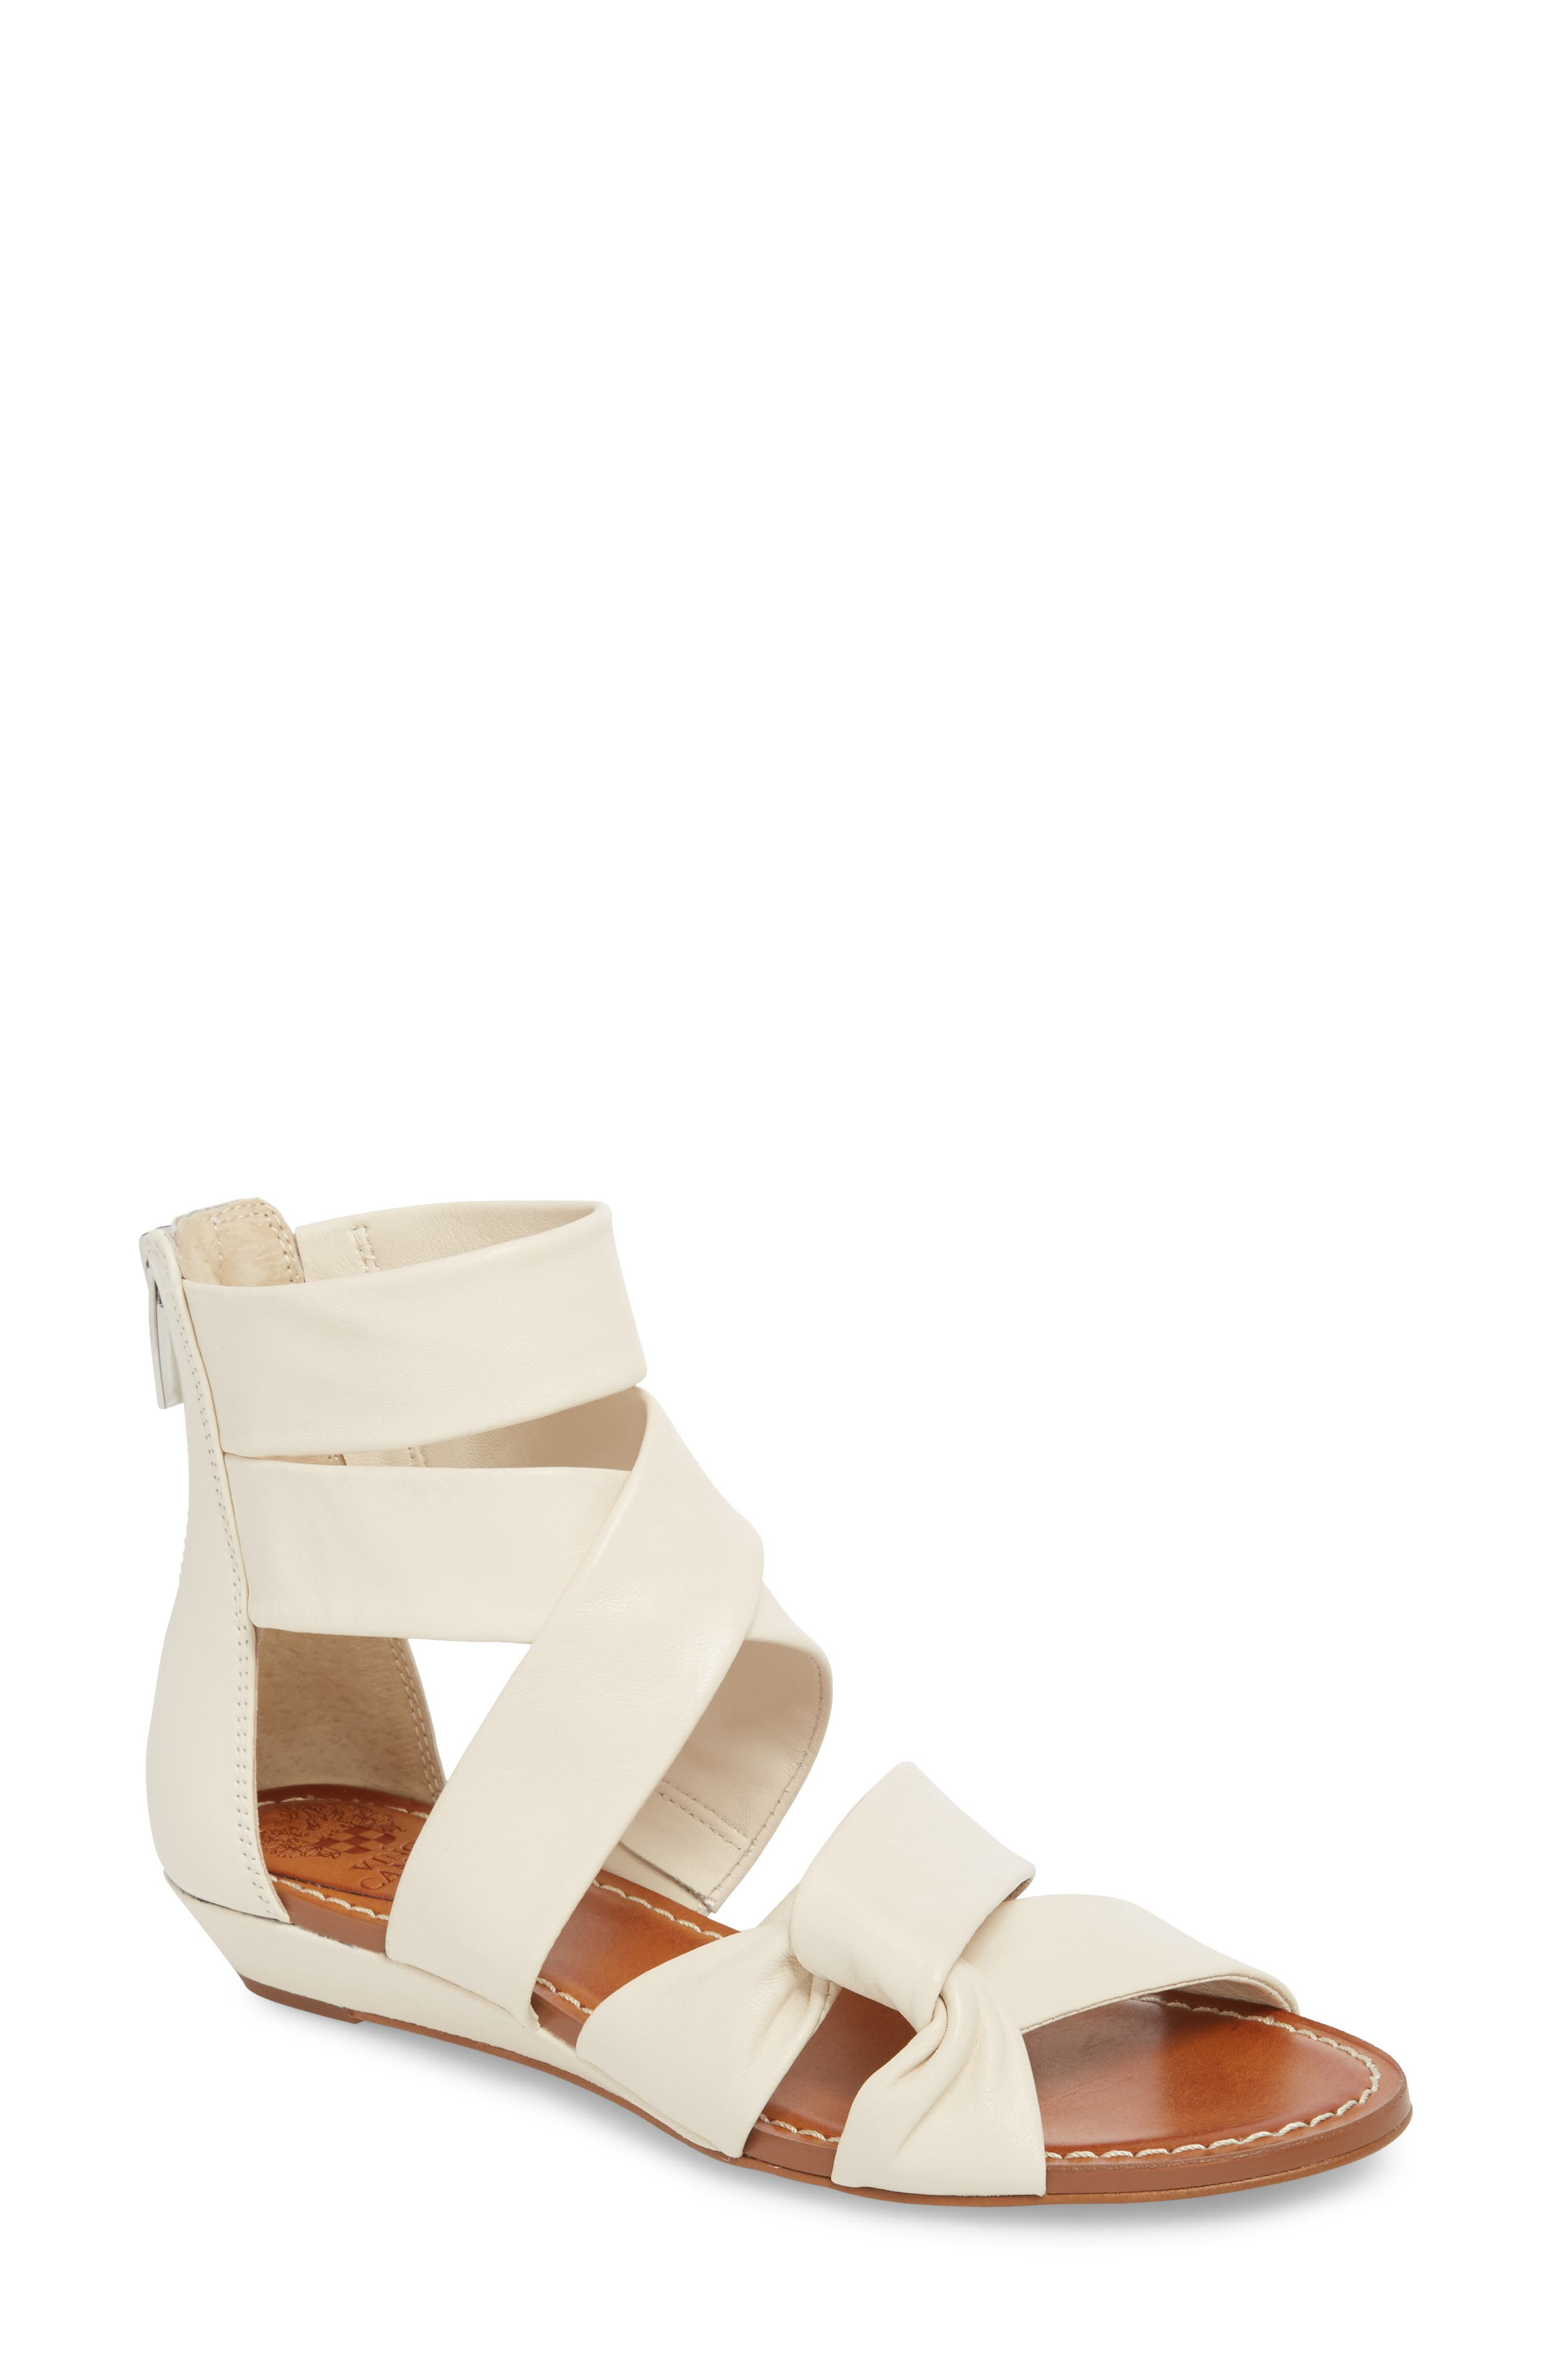 Seevina Low Wedge Sandal,                             Main thumbnail 1, color,                             Vanilla Leather